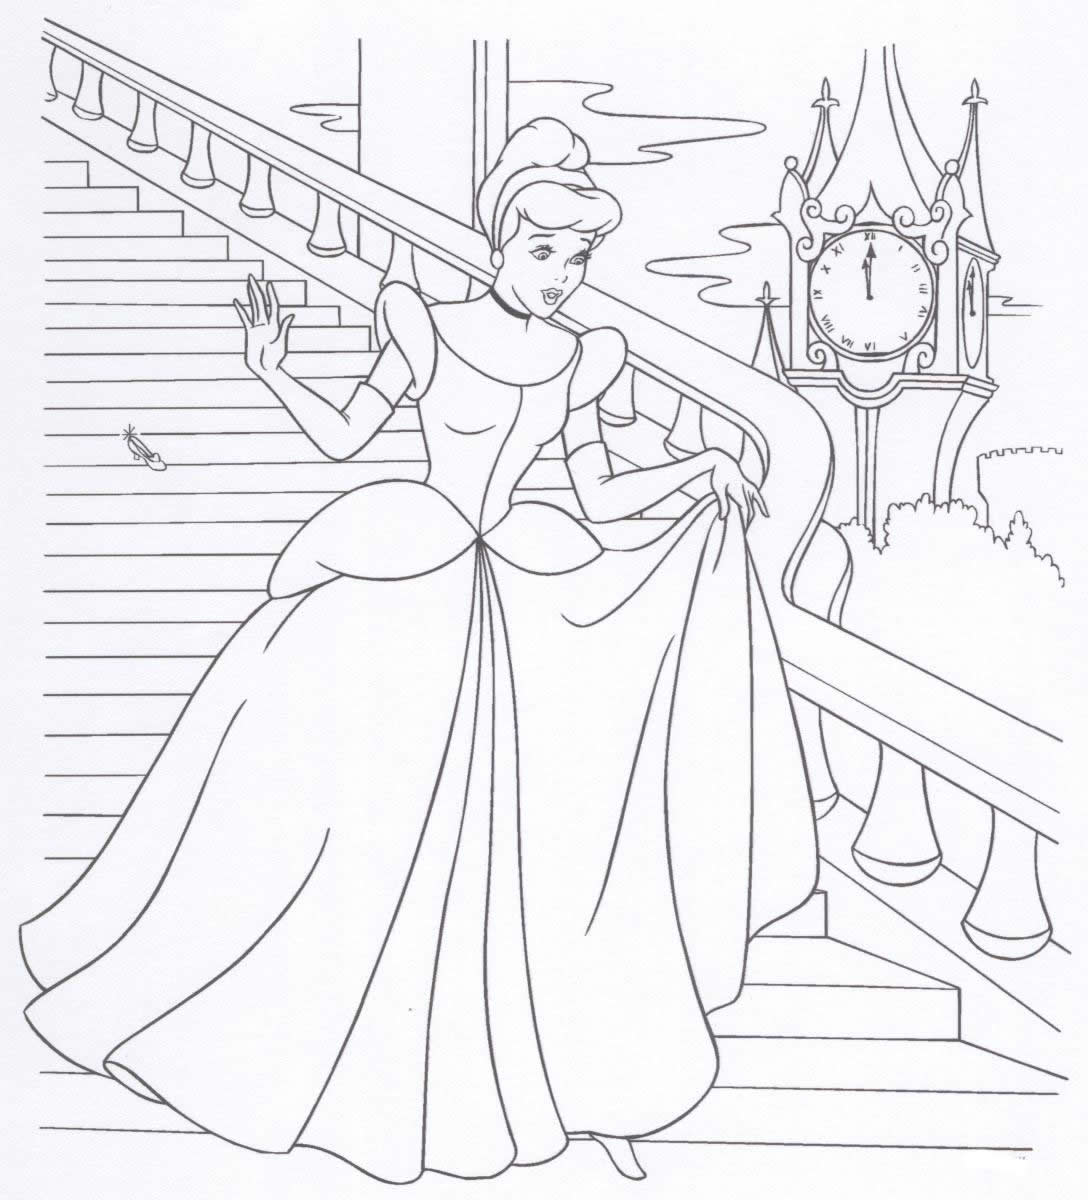 Princess jasmine colouring pages to print - Disney Princess Jasmine Coloring Pages